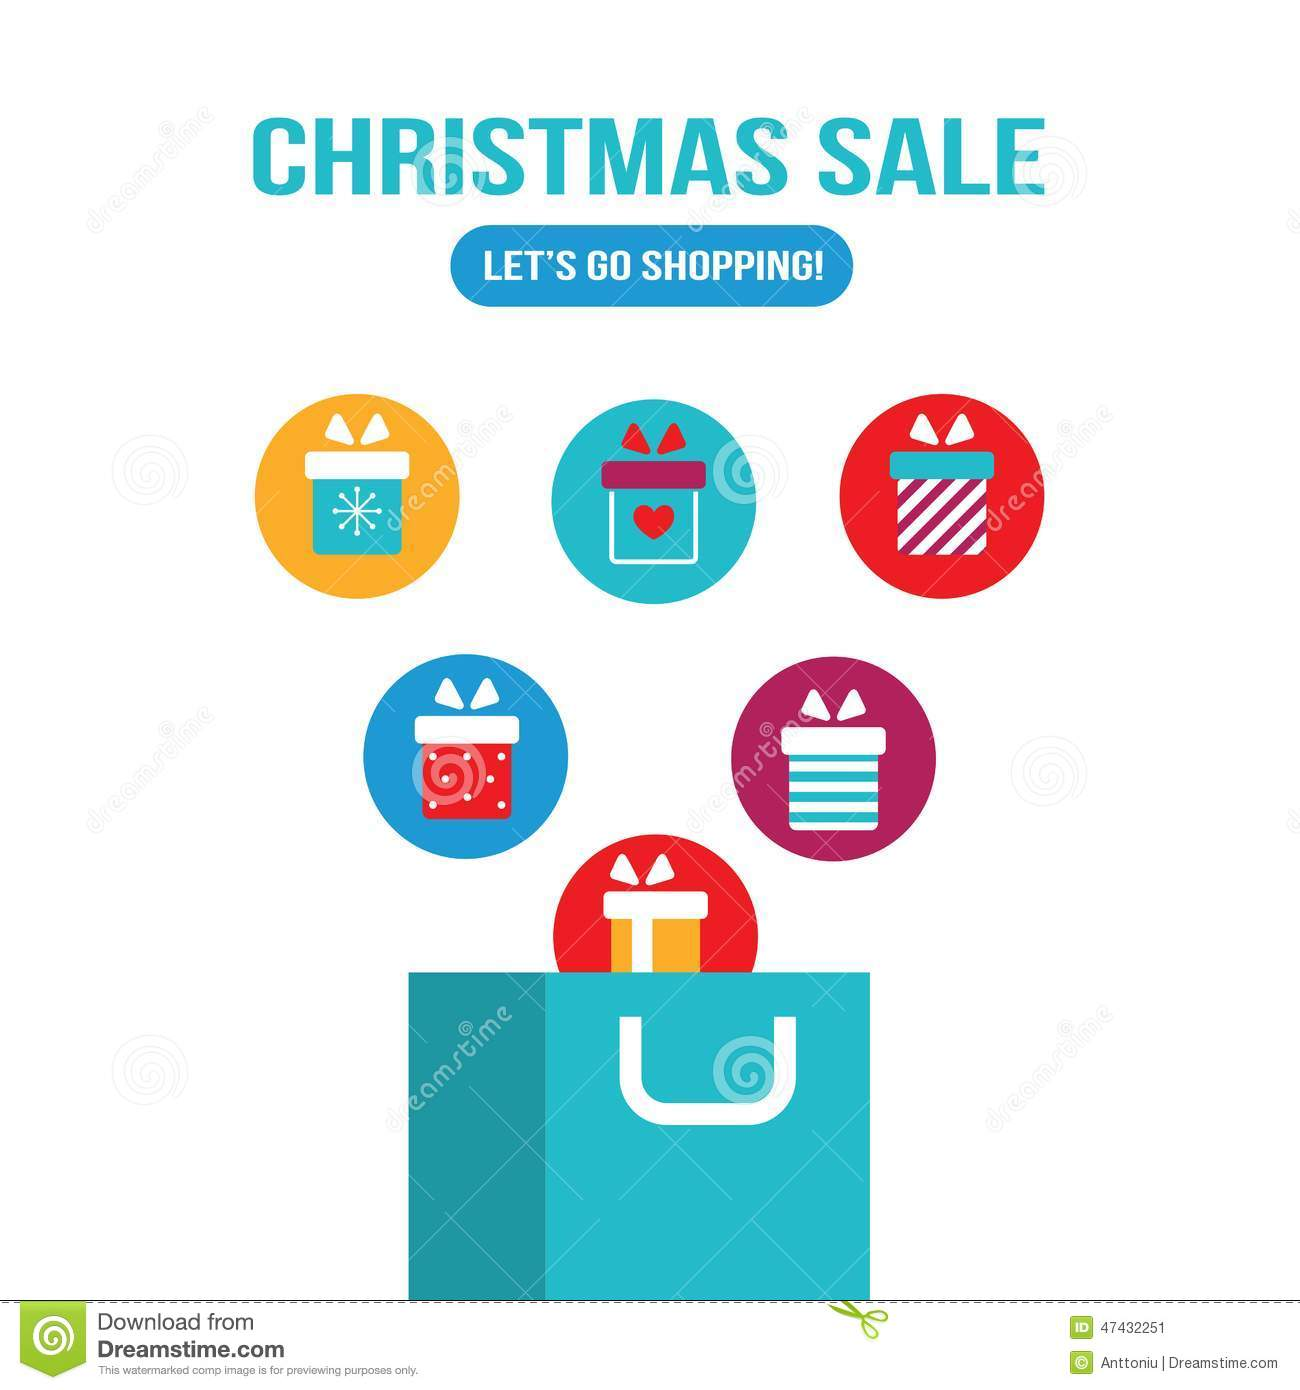 Celebrate this Festive Season by Shopping Online with New Year Deals and Coupons. Another year has come to an end with the festive season approaching near with the excitements of Christmas and New Year/5(70).